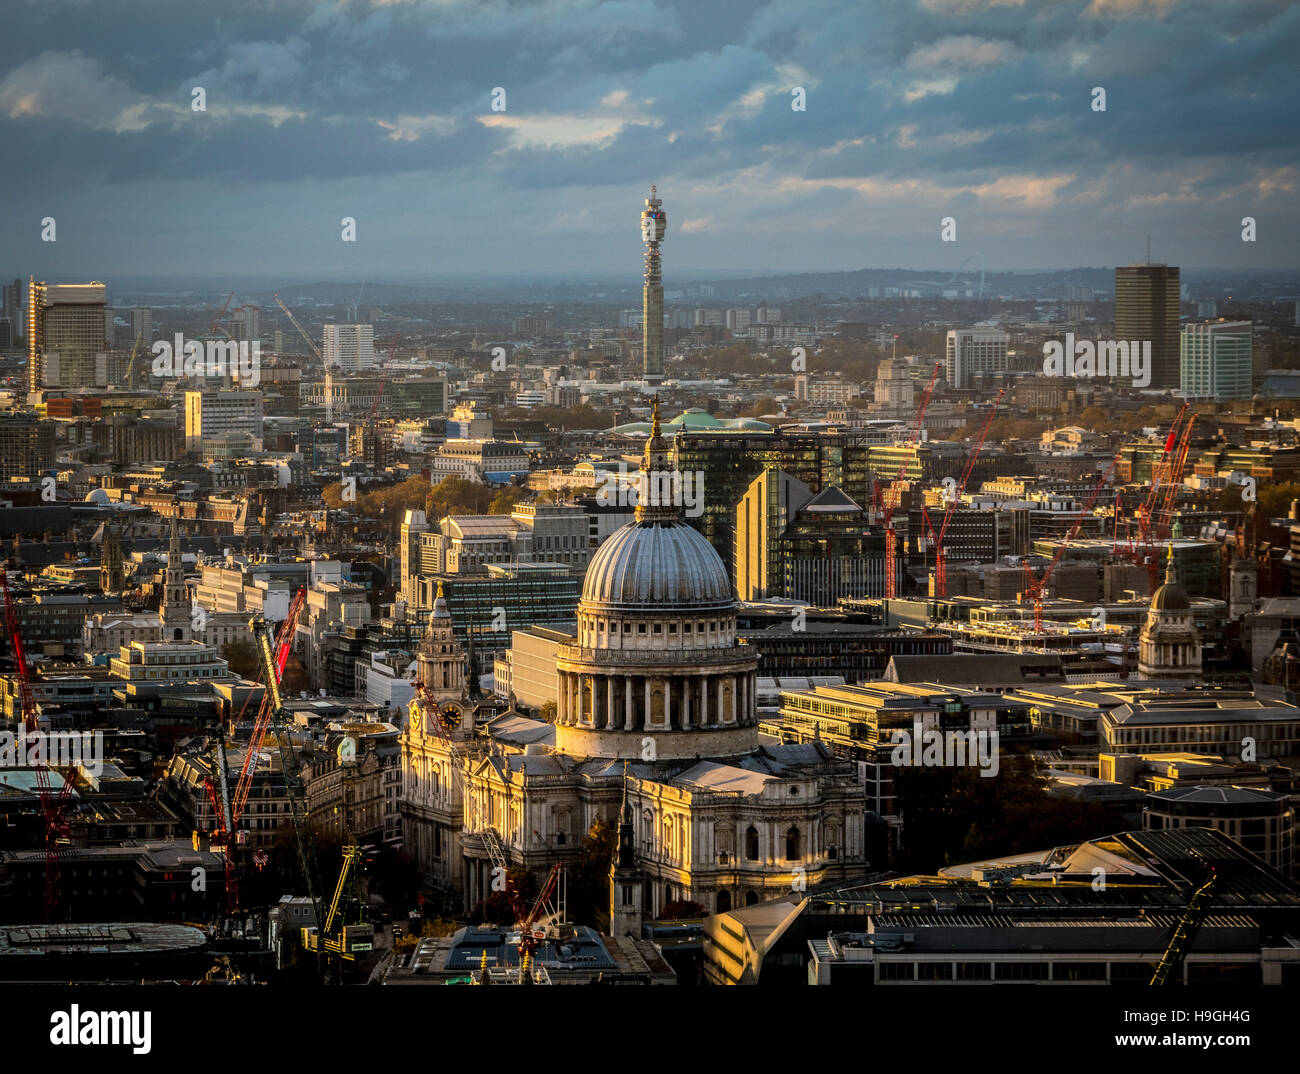 St Paul's Cathedral and the BT Telecom Tower, London, UK. - Stock Image